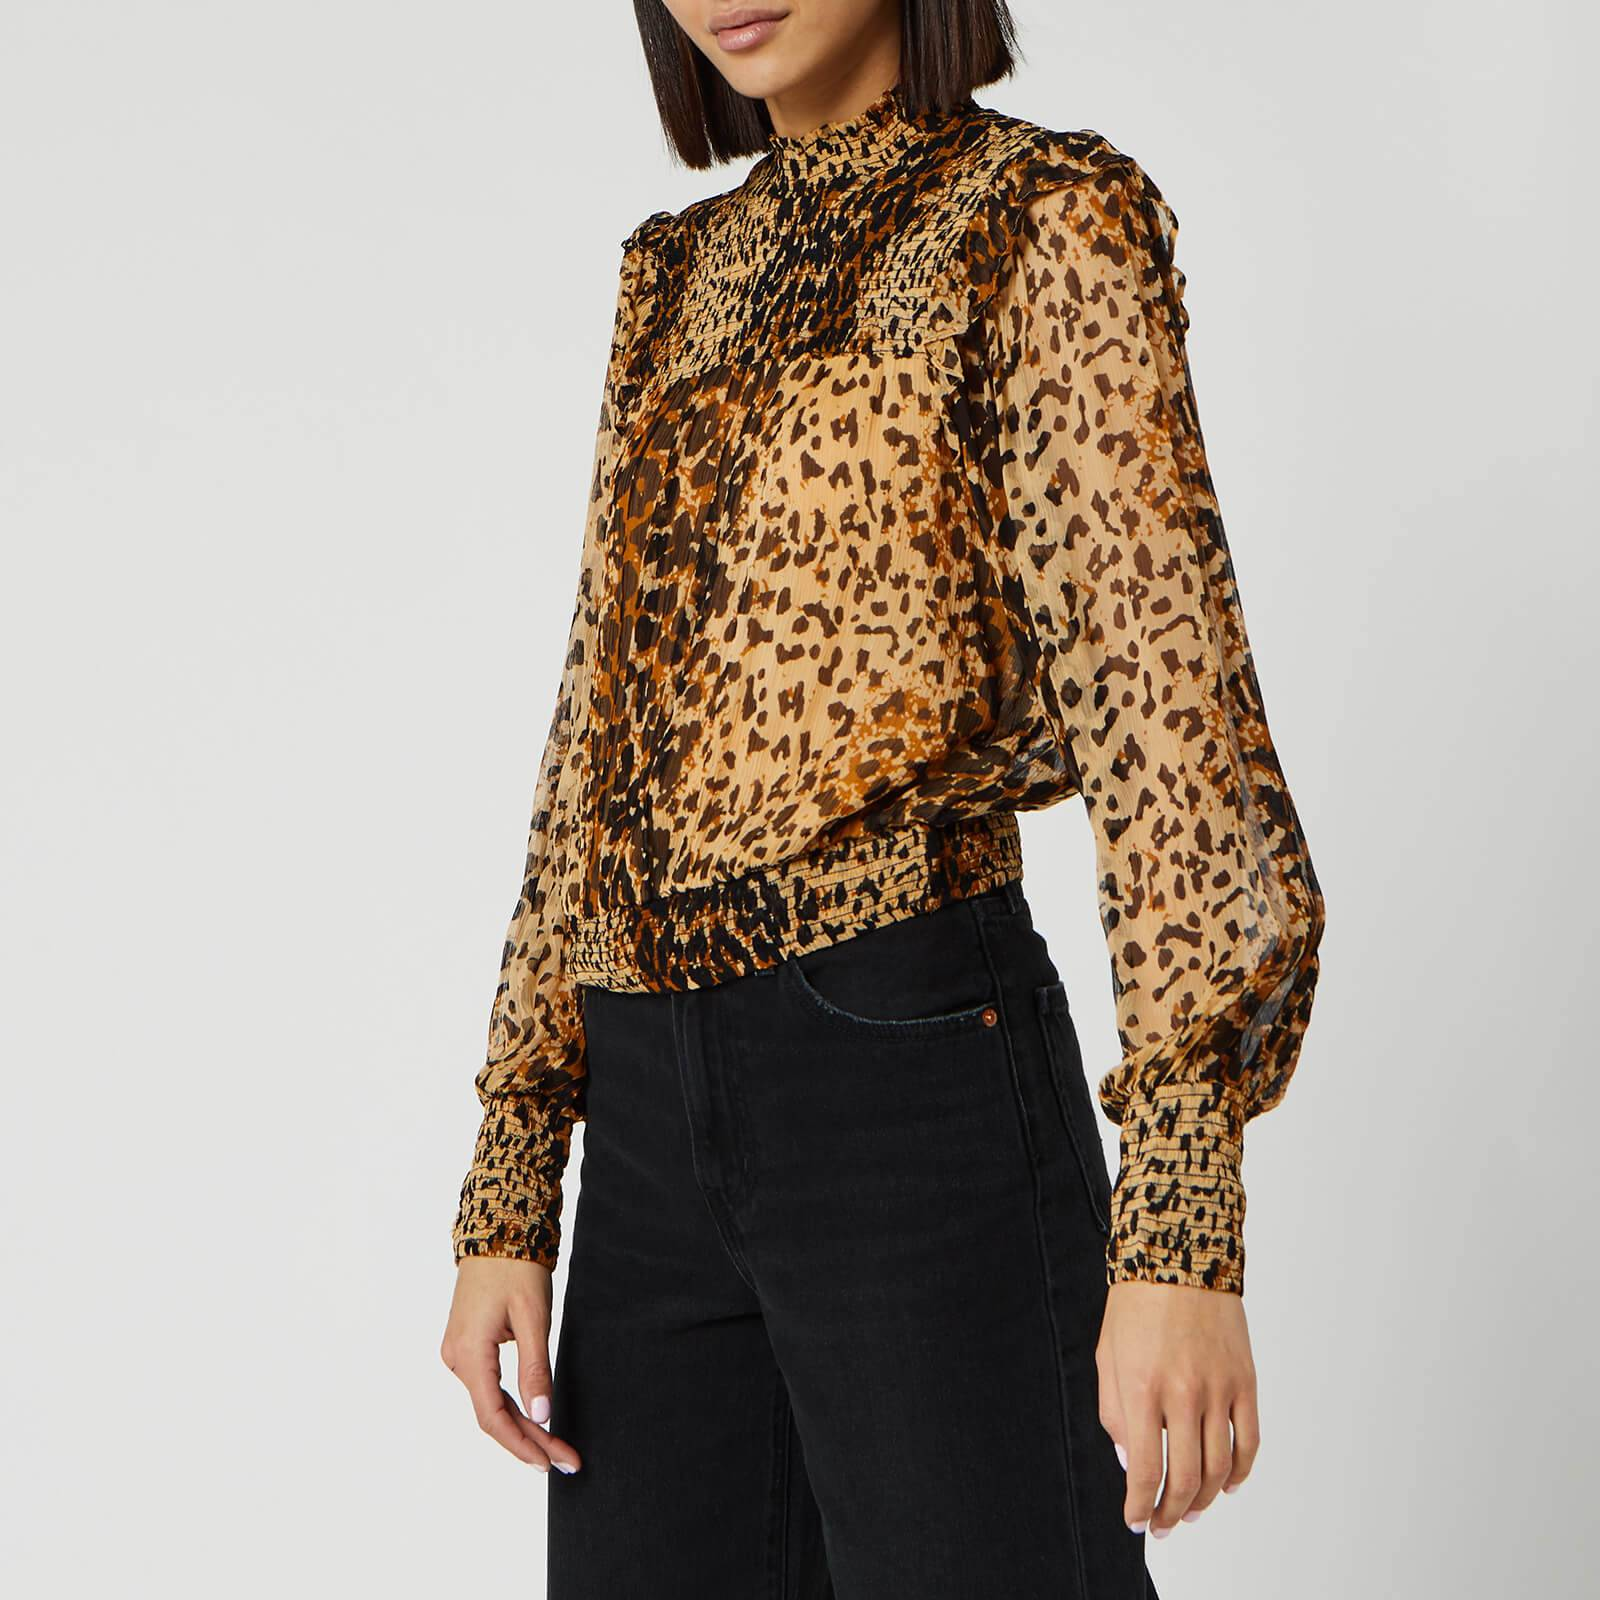 Free People Women's Roma Blouse - Brown Leopard - S